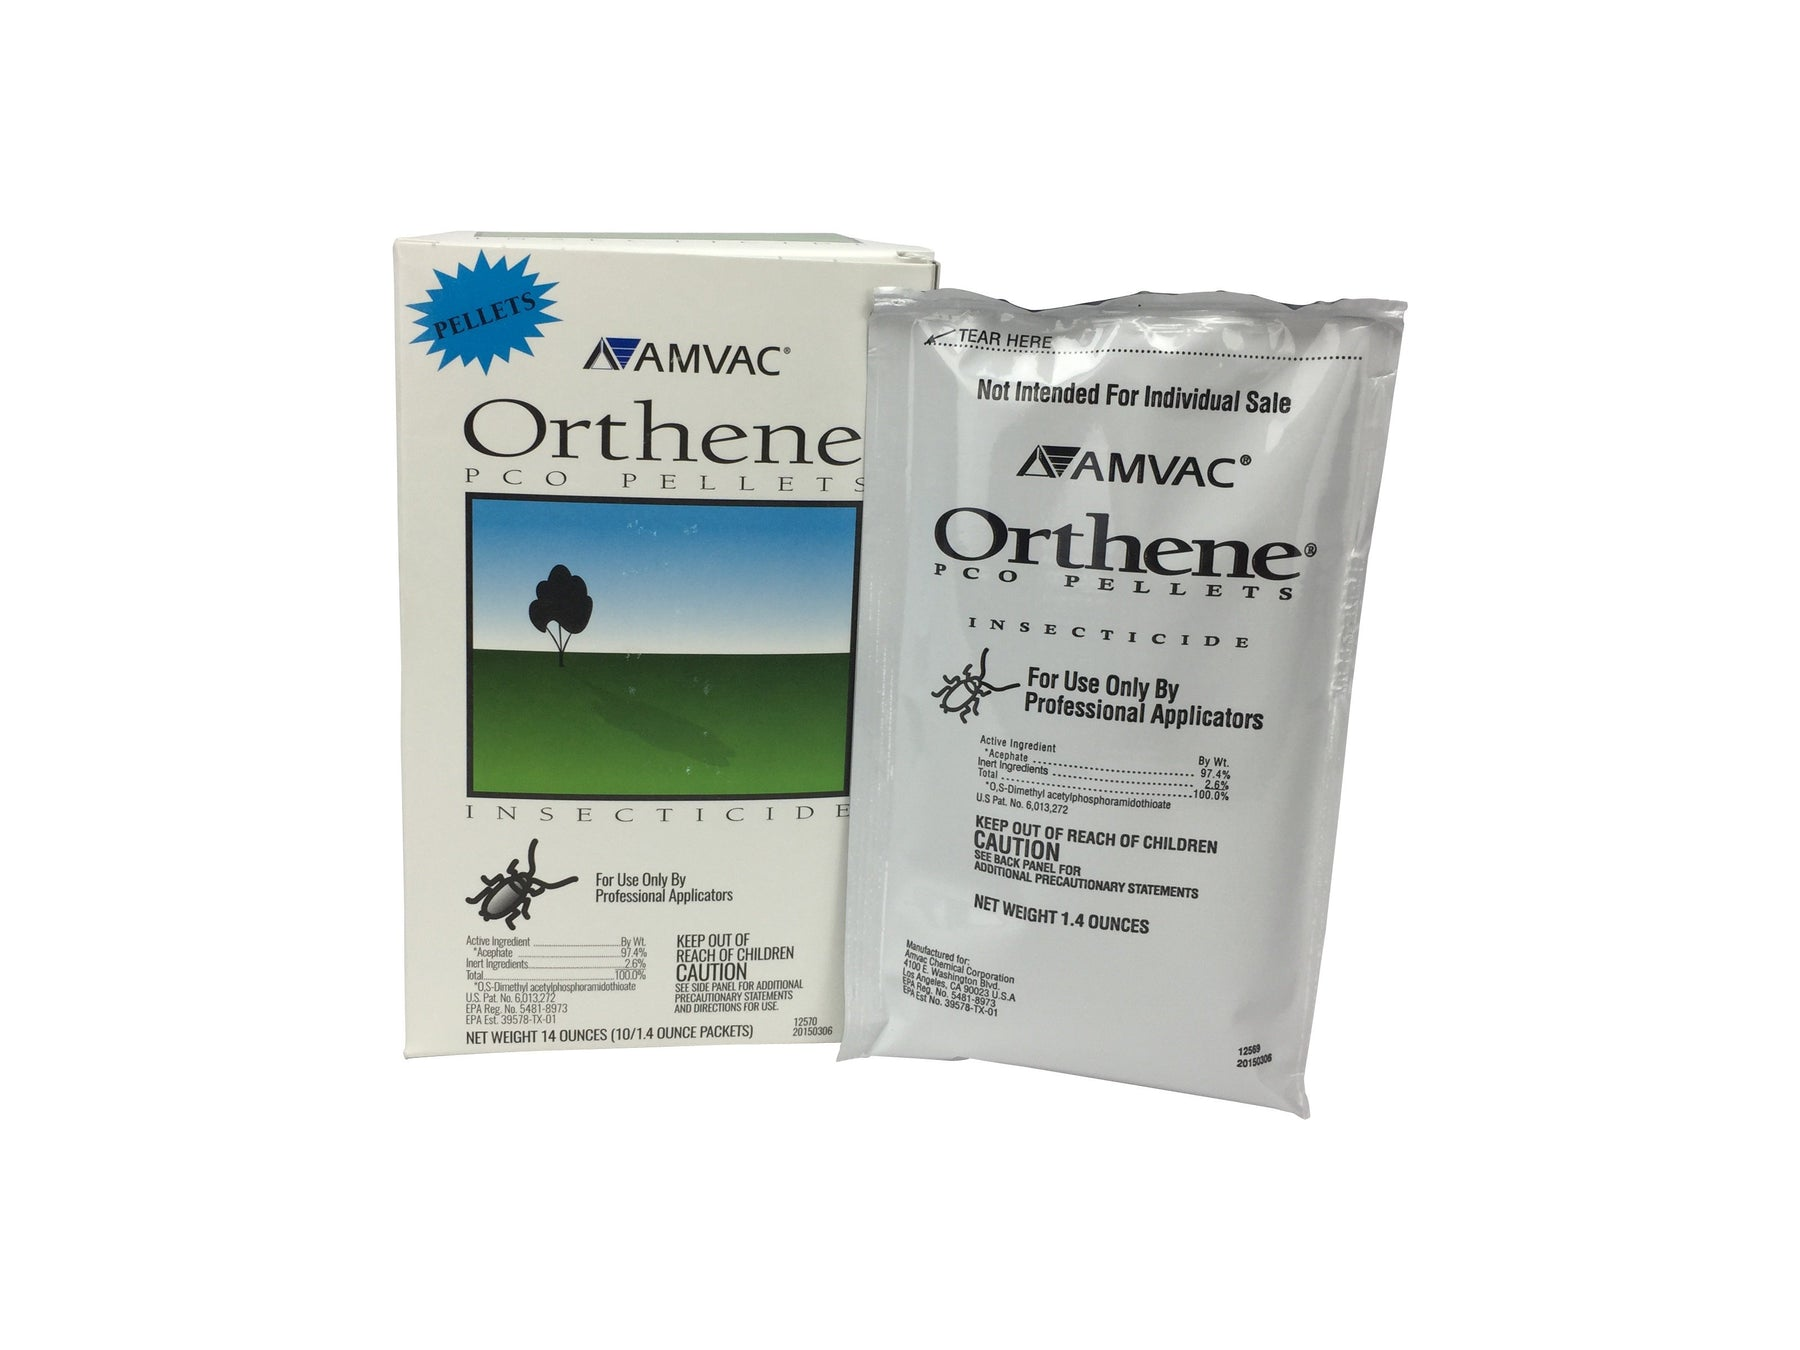 Orthene PCO Professional Pellets